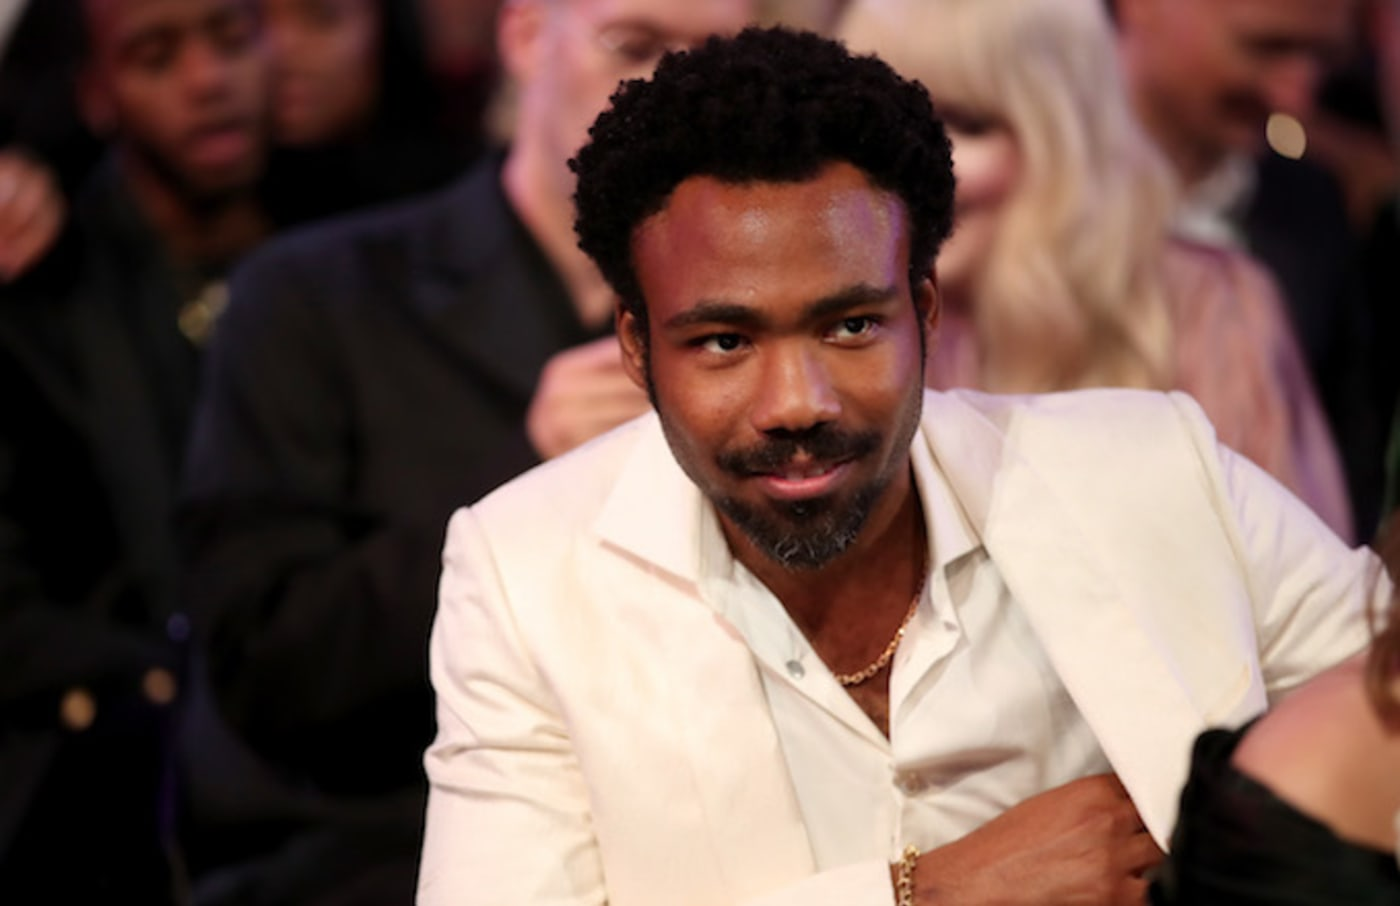 Childish Gambino attends the 60th Annual Grammy Awards at Madison Square Garden.